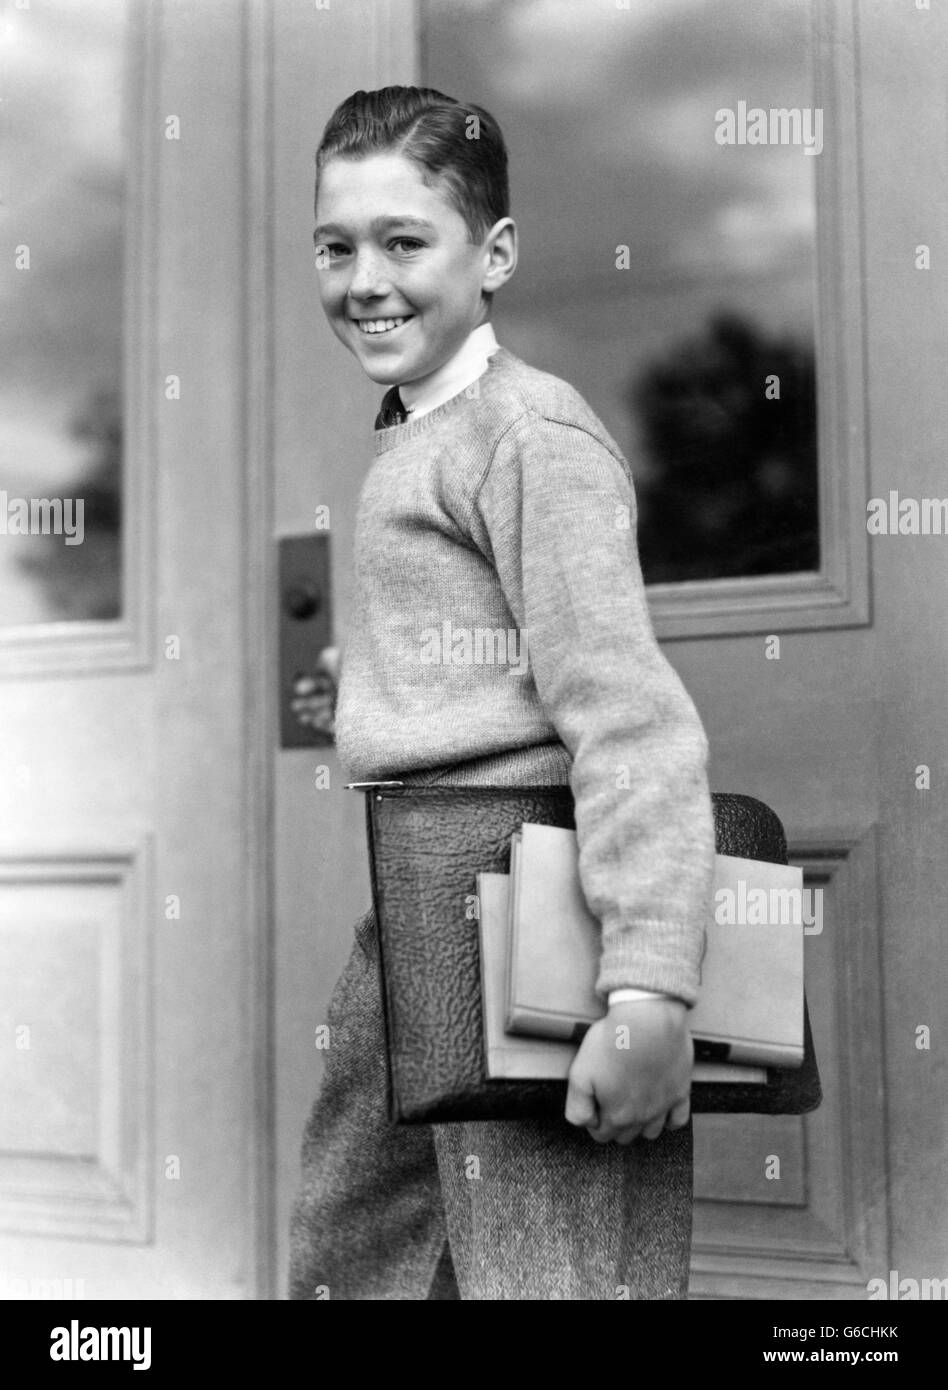 1930s SMILING BOY STUDENT CARRYING TEXTBOOKS STANDING BY SCHOOL DOOR ENTRANCE LOOKING AT CAMERA - Stock Image